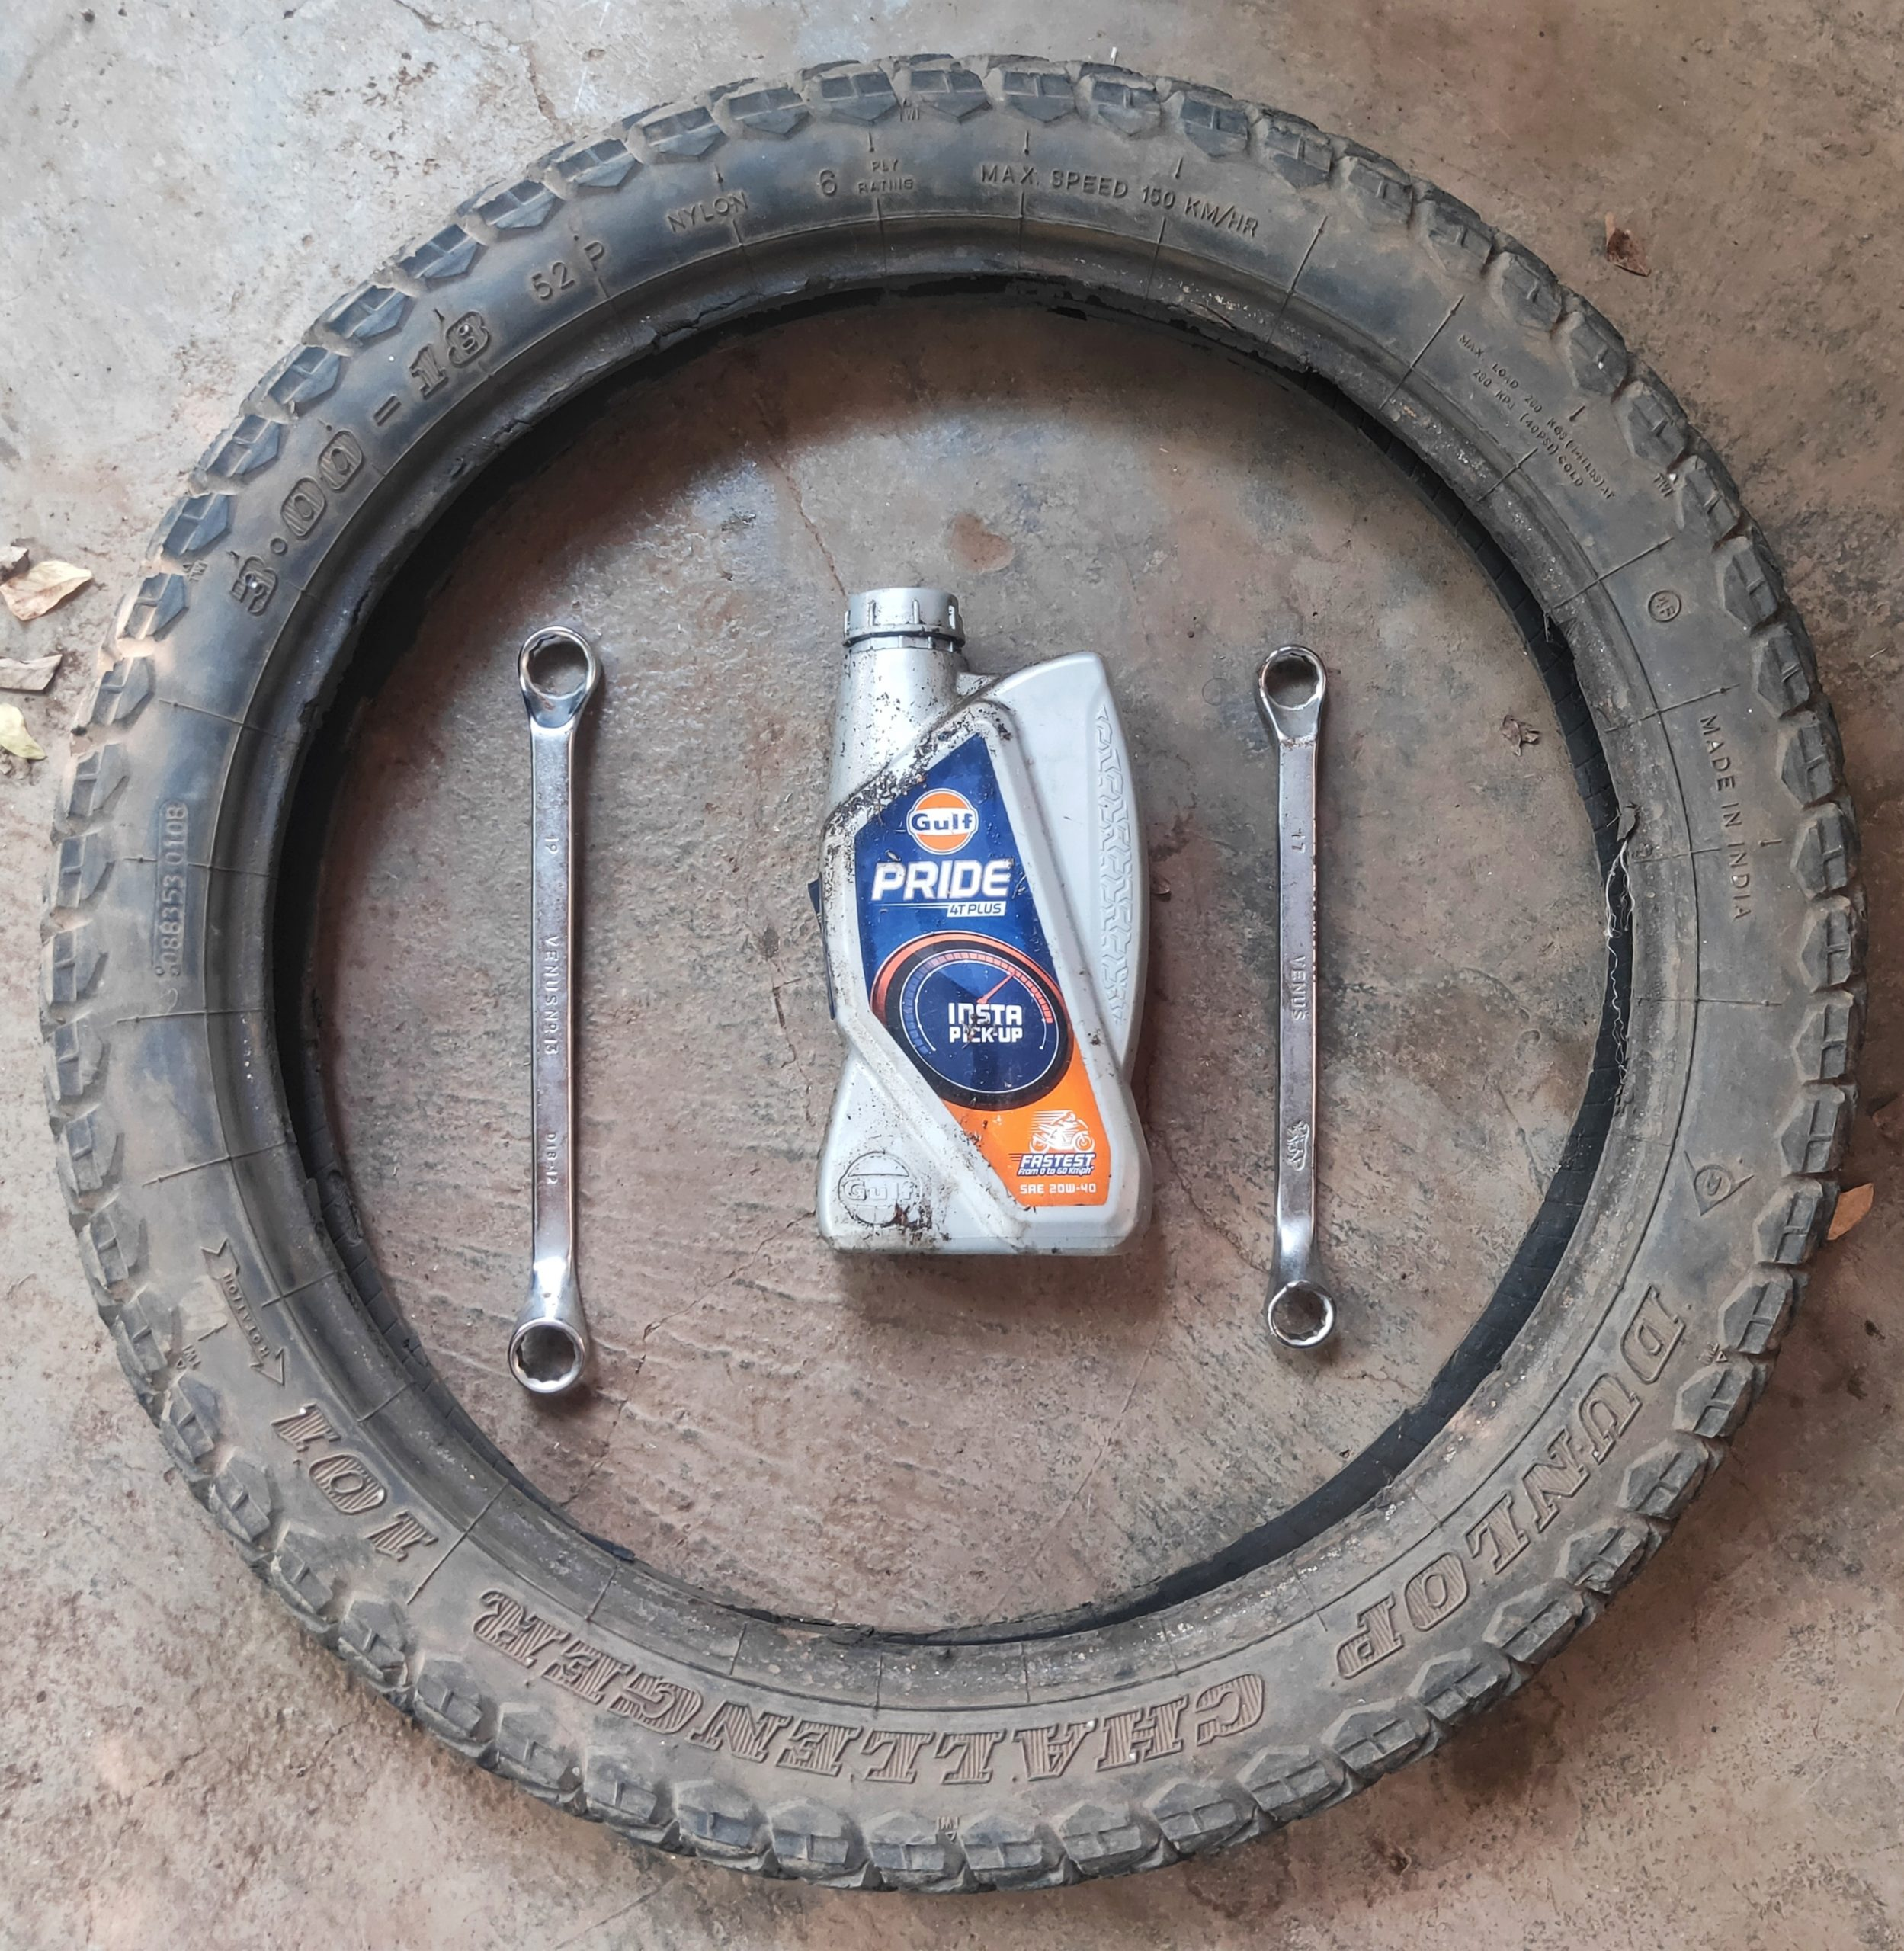 Bike tyre and tools